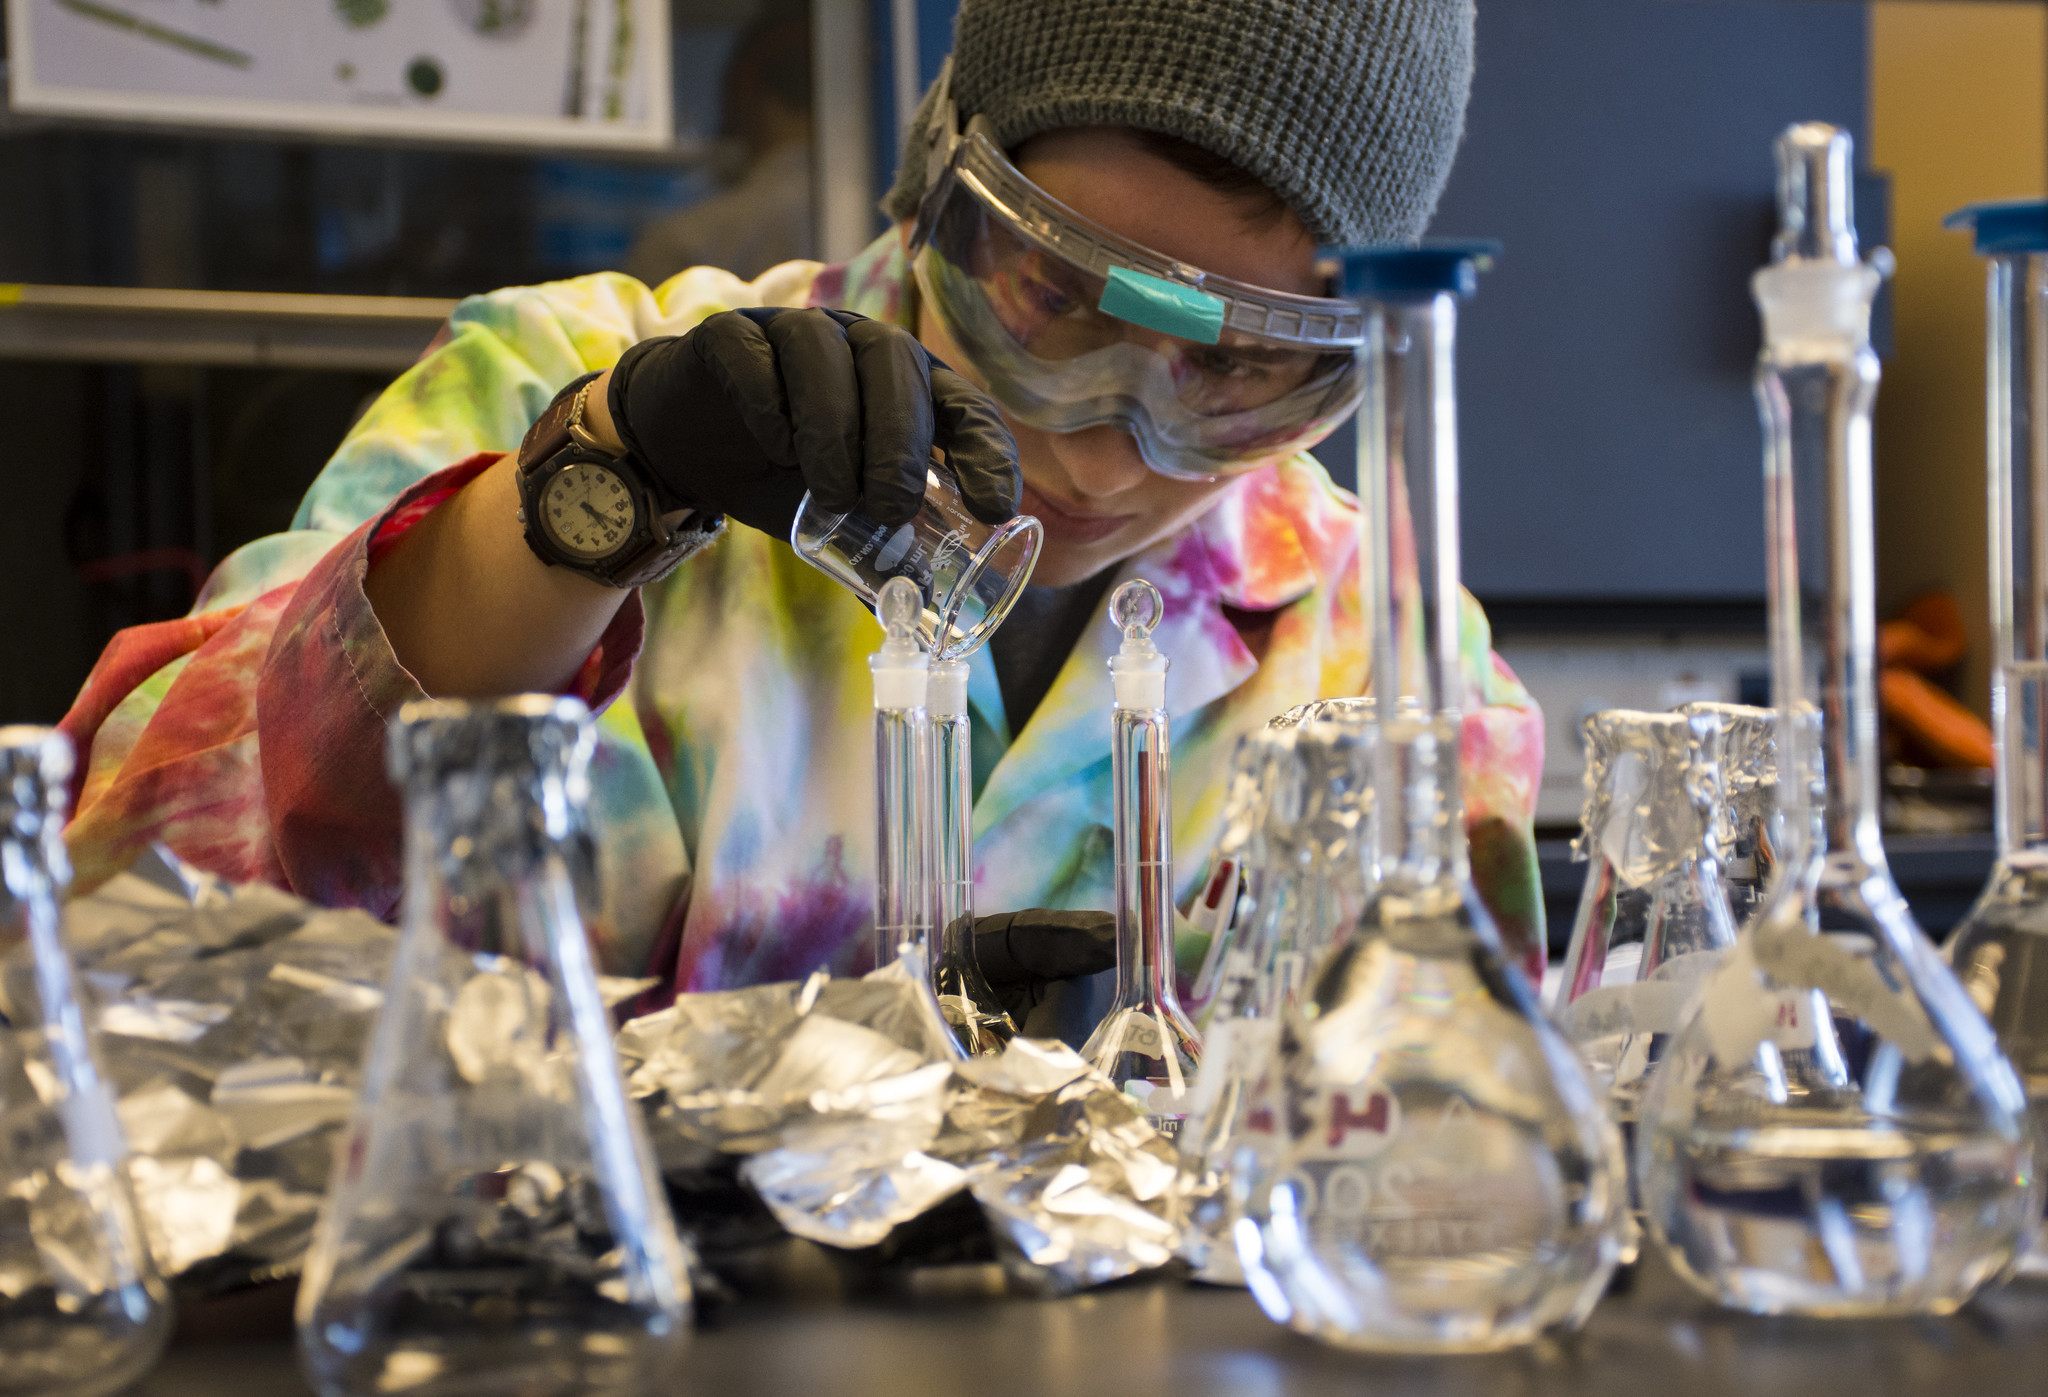 A student in a tie-dyed lab coat uses laboratory glasswear.